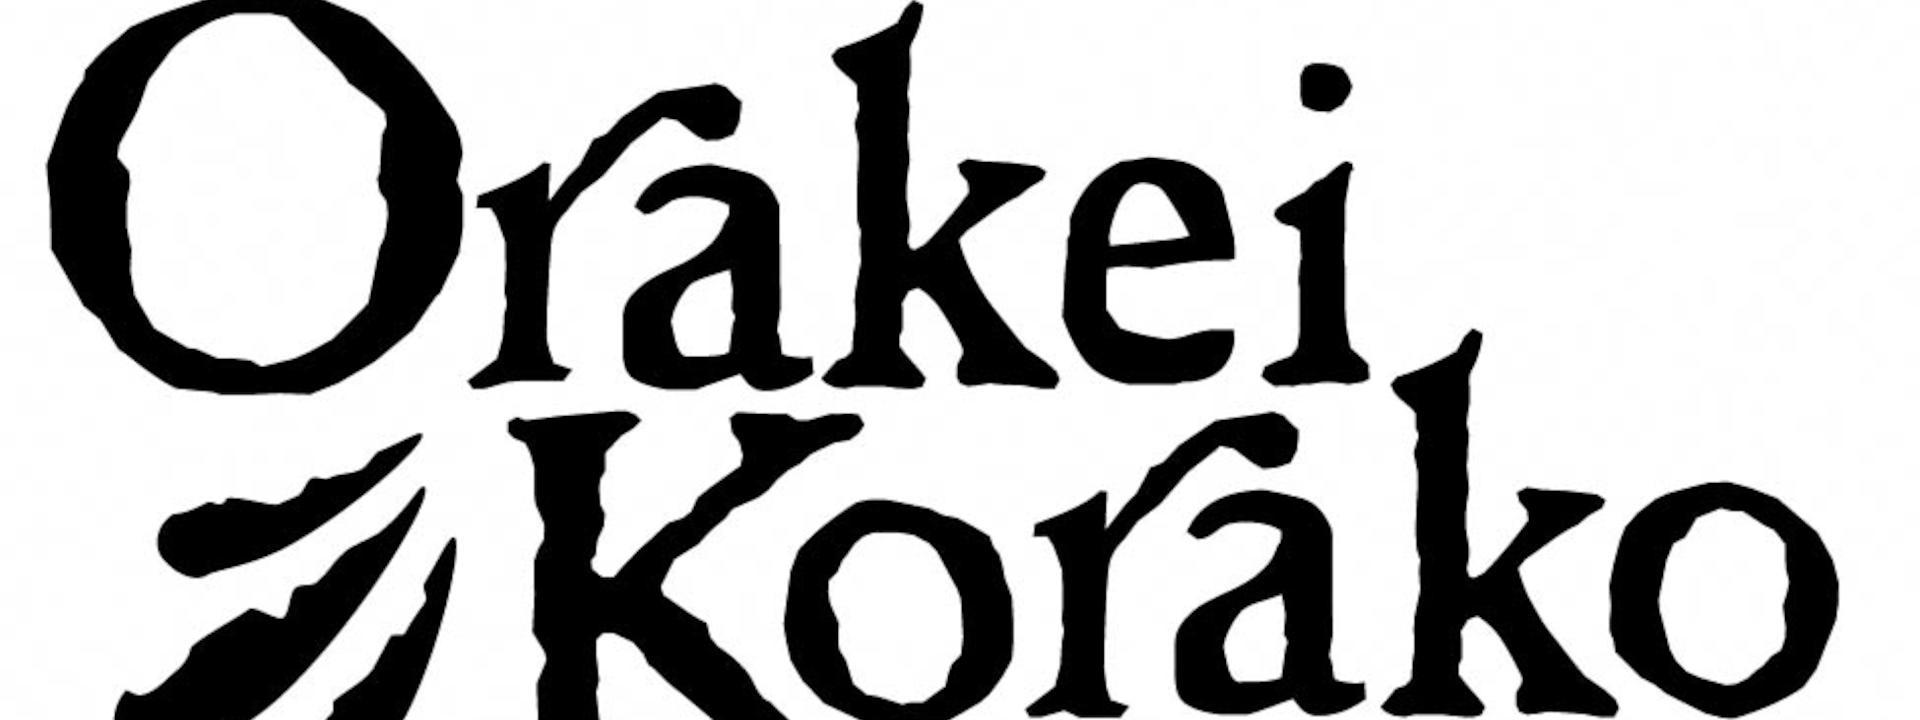 Oraki Korako Logo Black on White